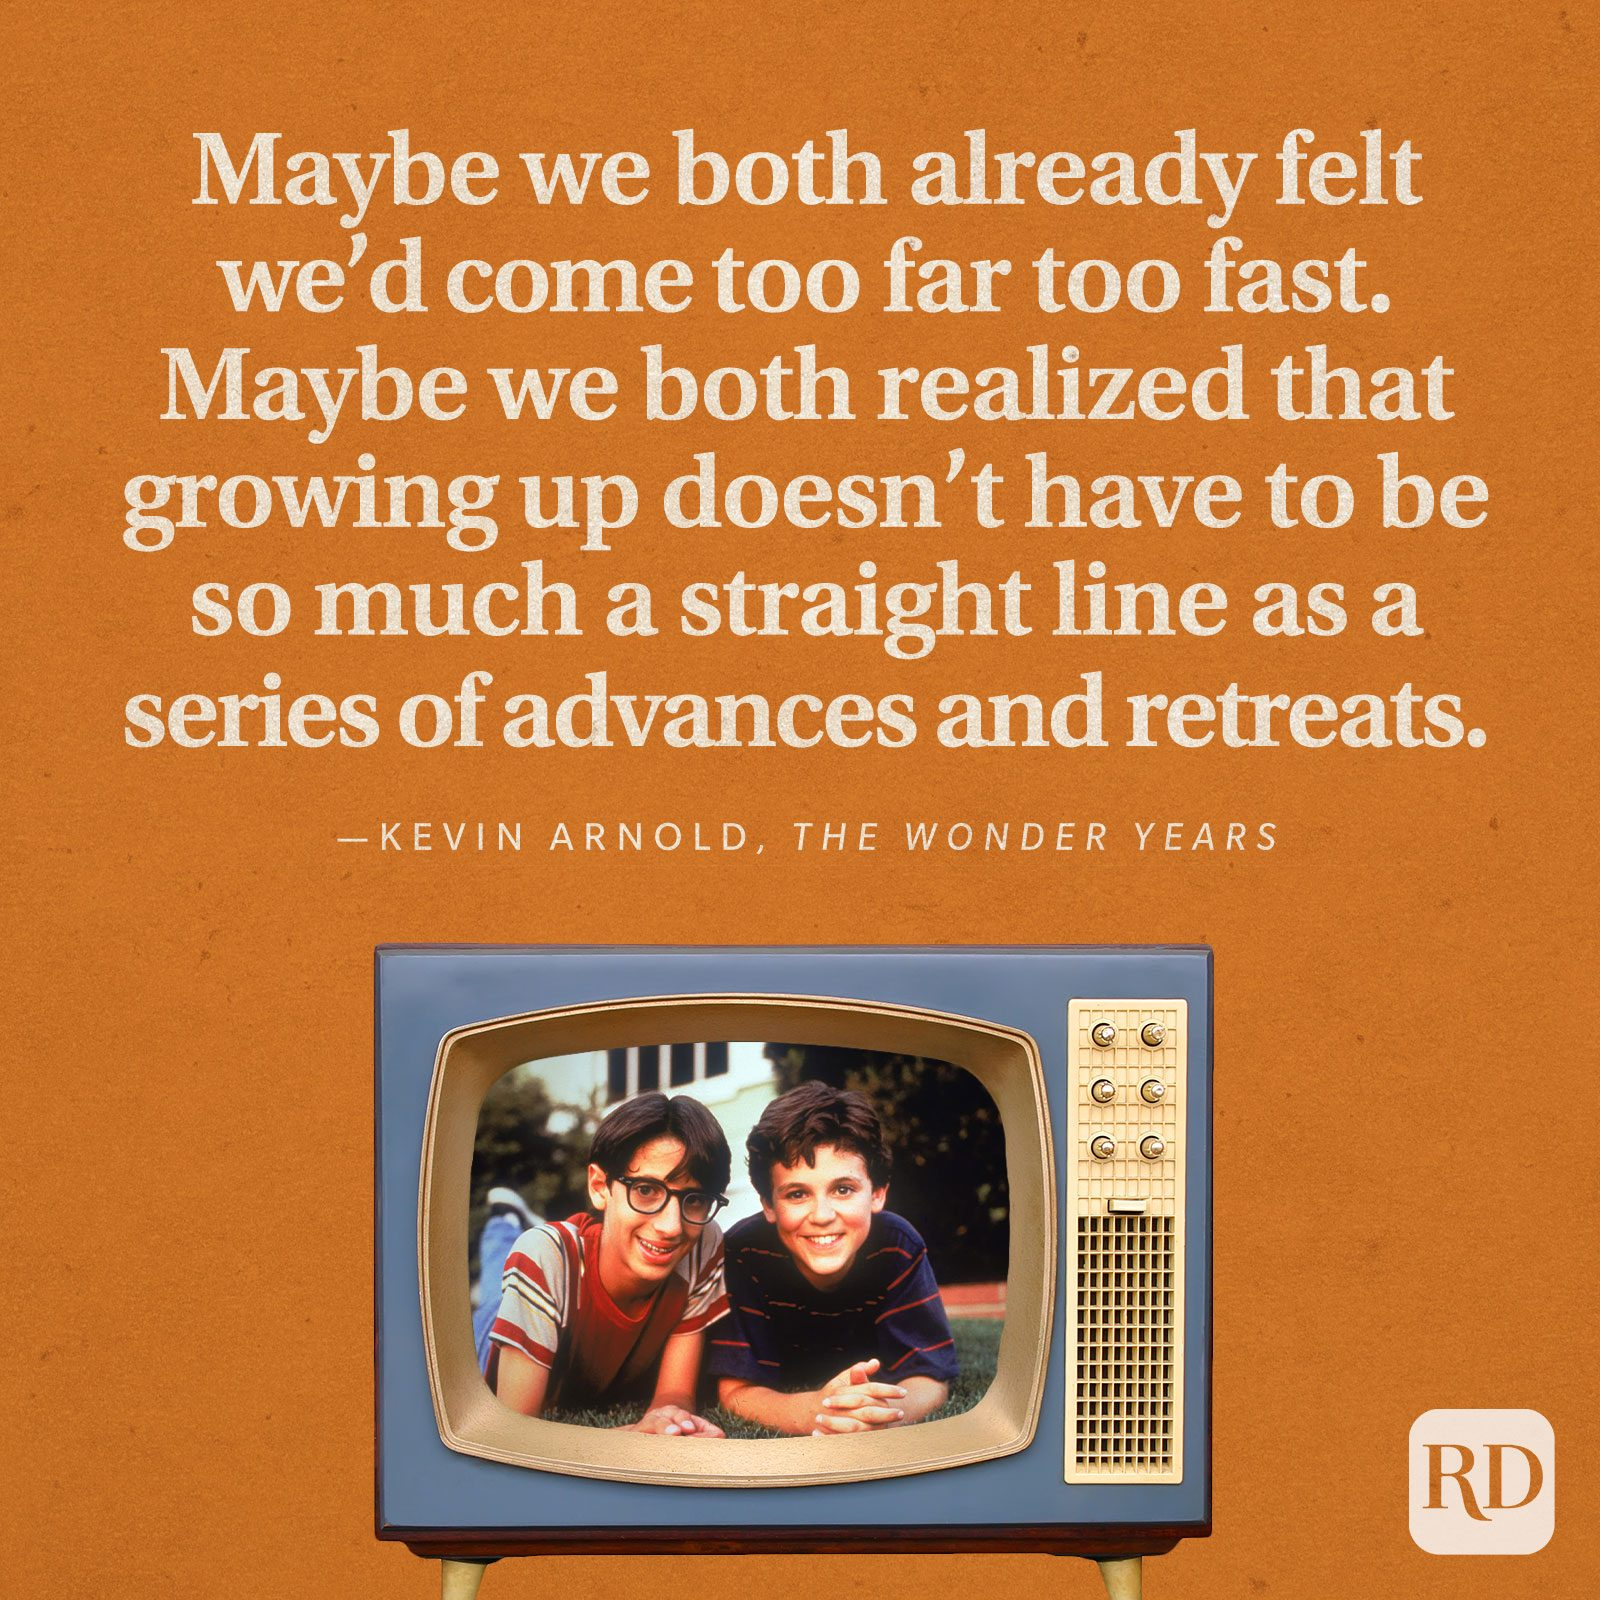 """""""Maybe we both already felt we'd come too far too fast. Maybe we both realized that growing up doesn't have to be so much a straight line as a series of advances and retreats."""" —Kevin Arnold in The Wonder Years."""